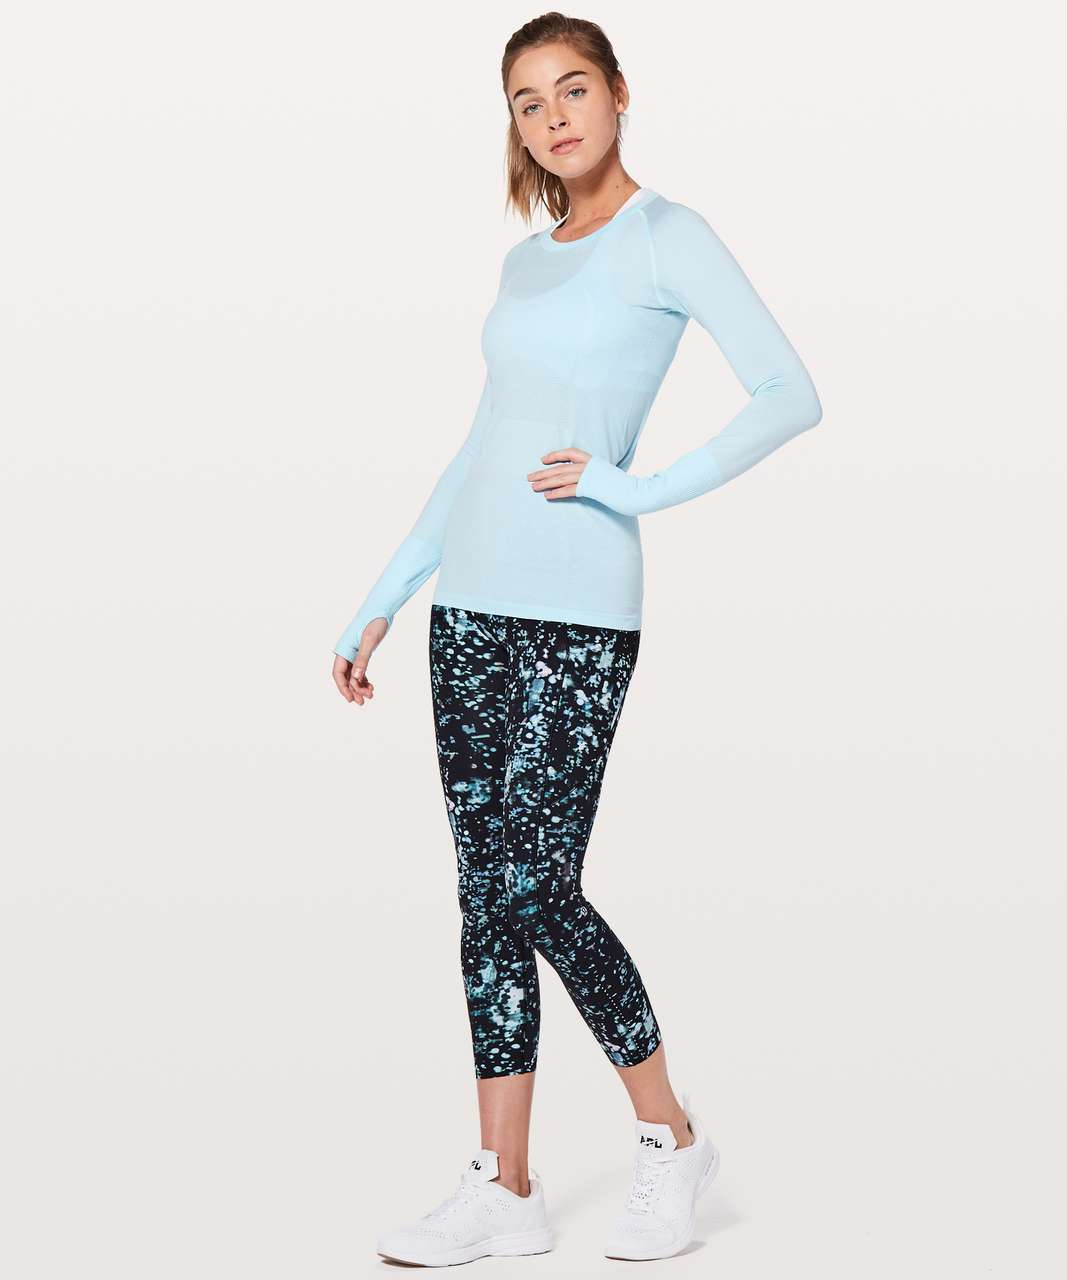 Lululemon Swiftly Tech Long Sleeve Crew - Blue Glow / White